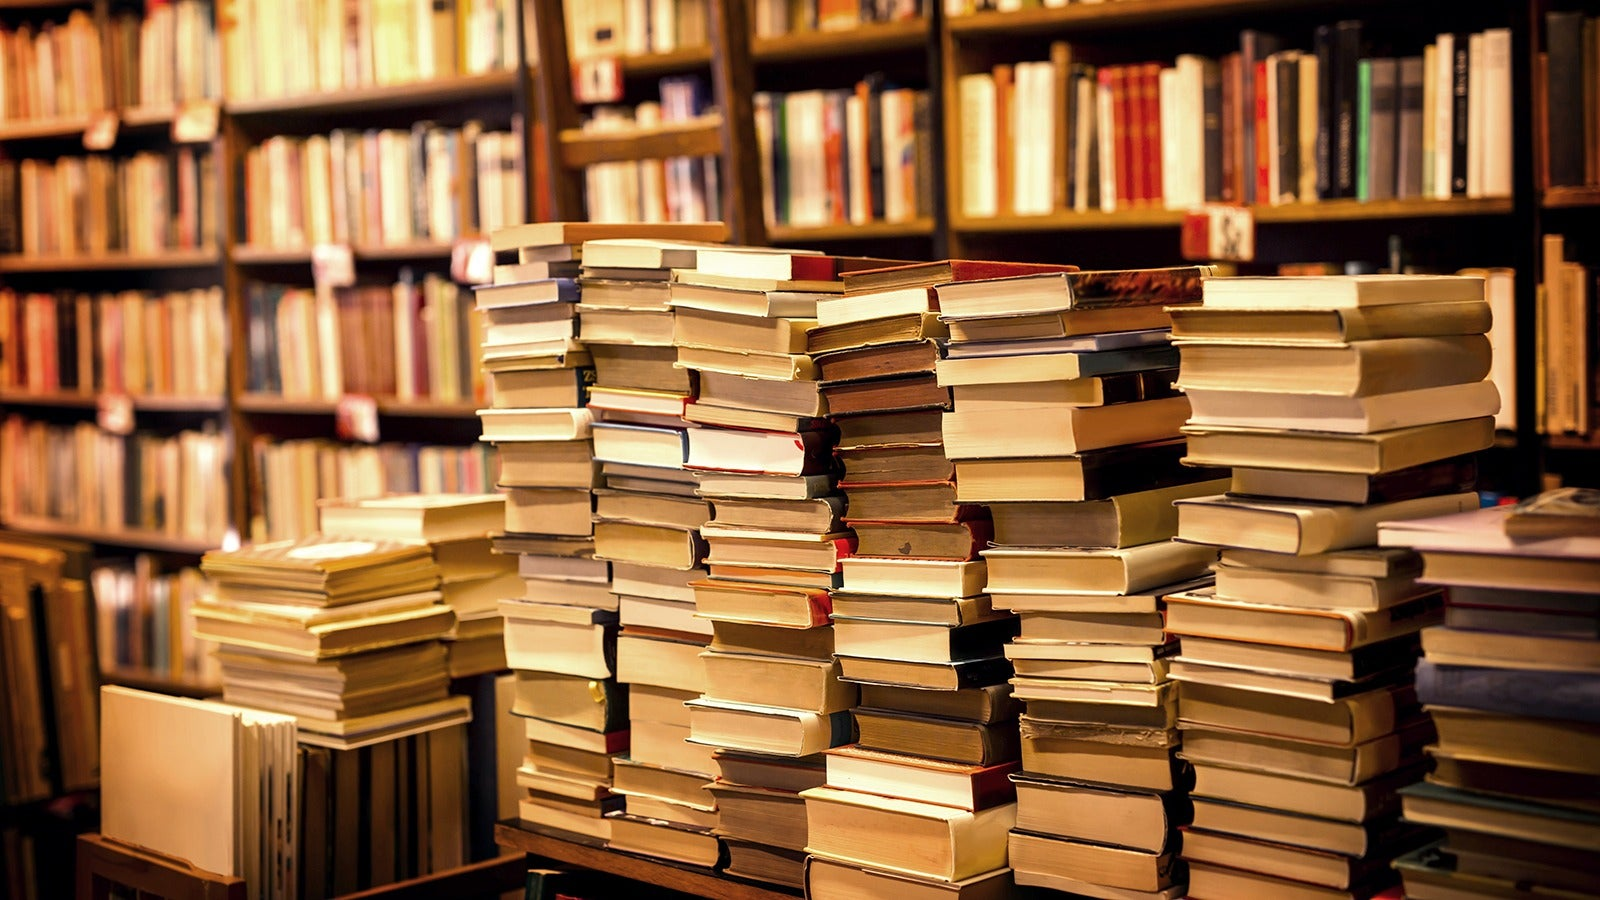 Books on shelves and piles of books